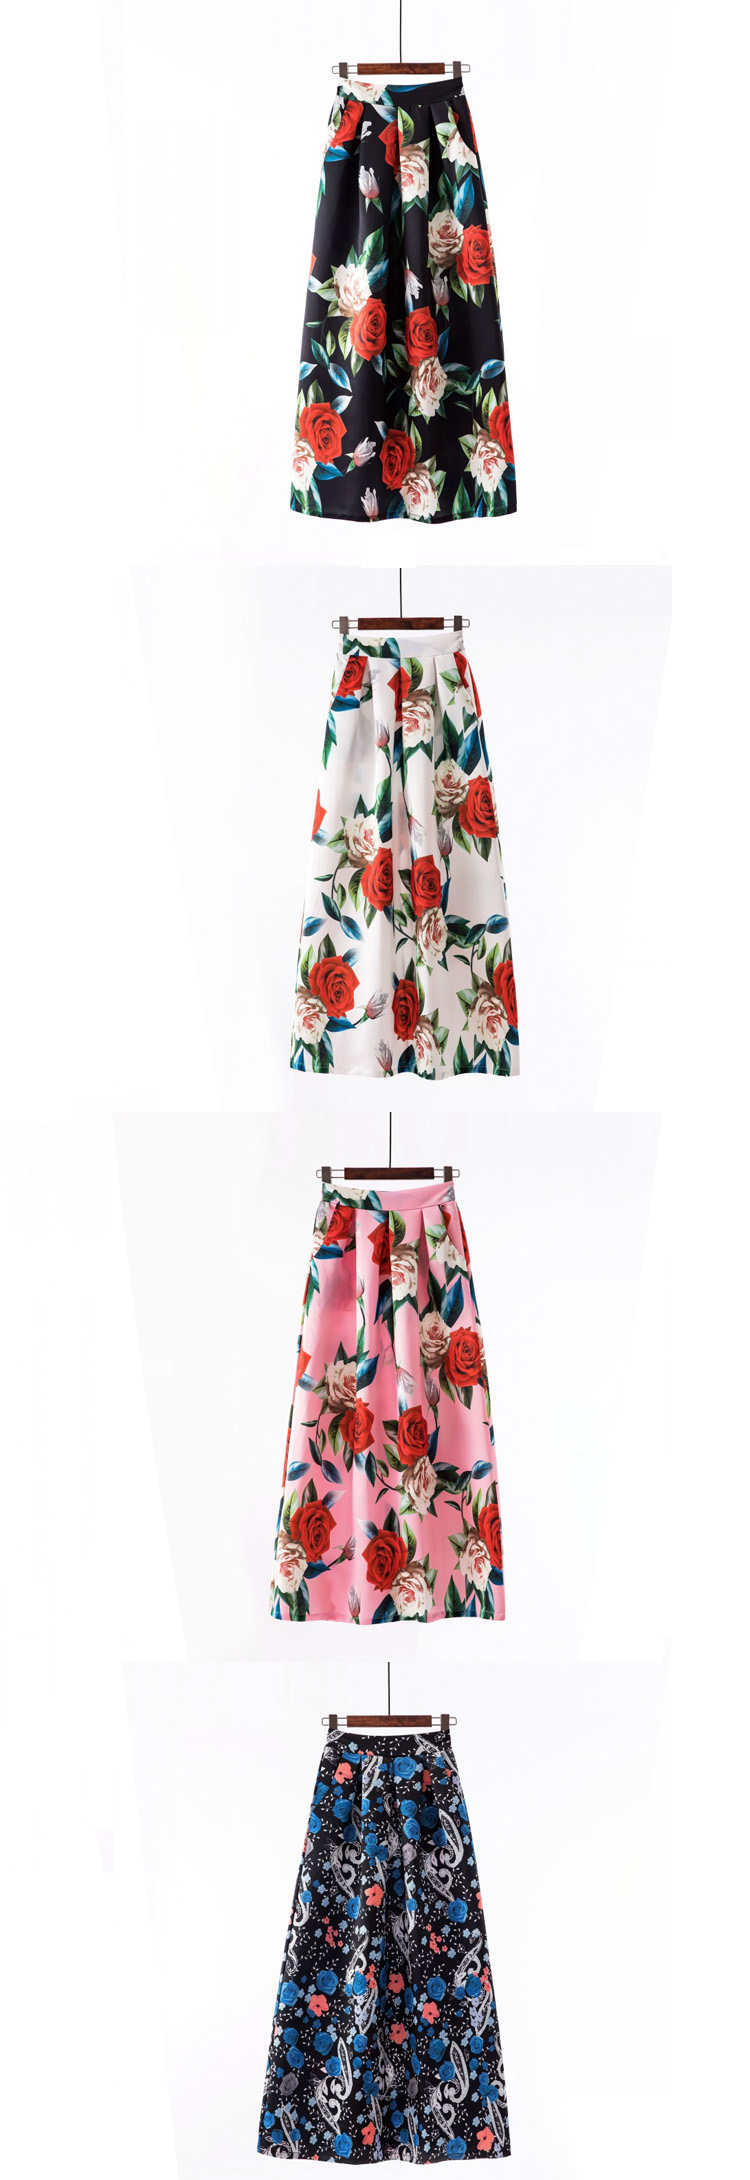 Plus size Maxi Skirt Summer Fashion Vintage High Street A-line High Waist Floral Polka Dot Long Skirts for Women 2020 Jupe Longa 34